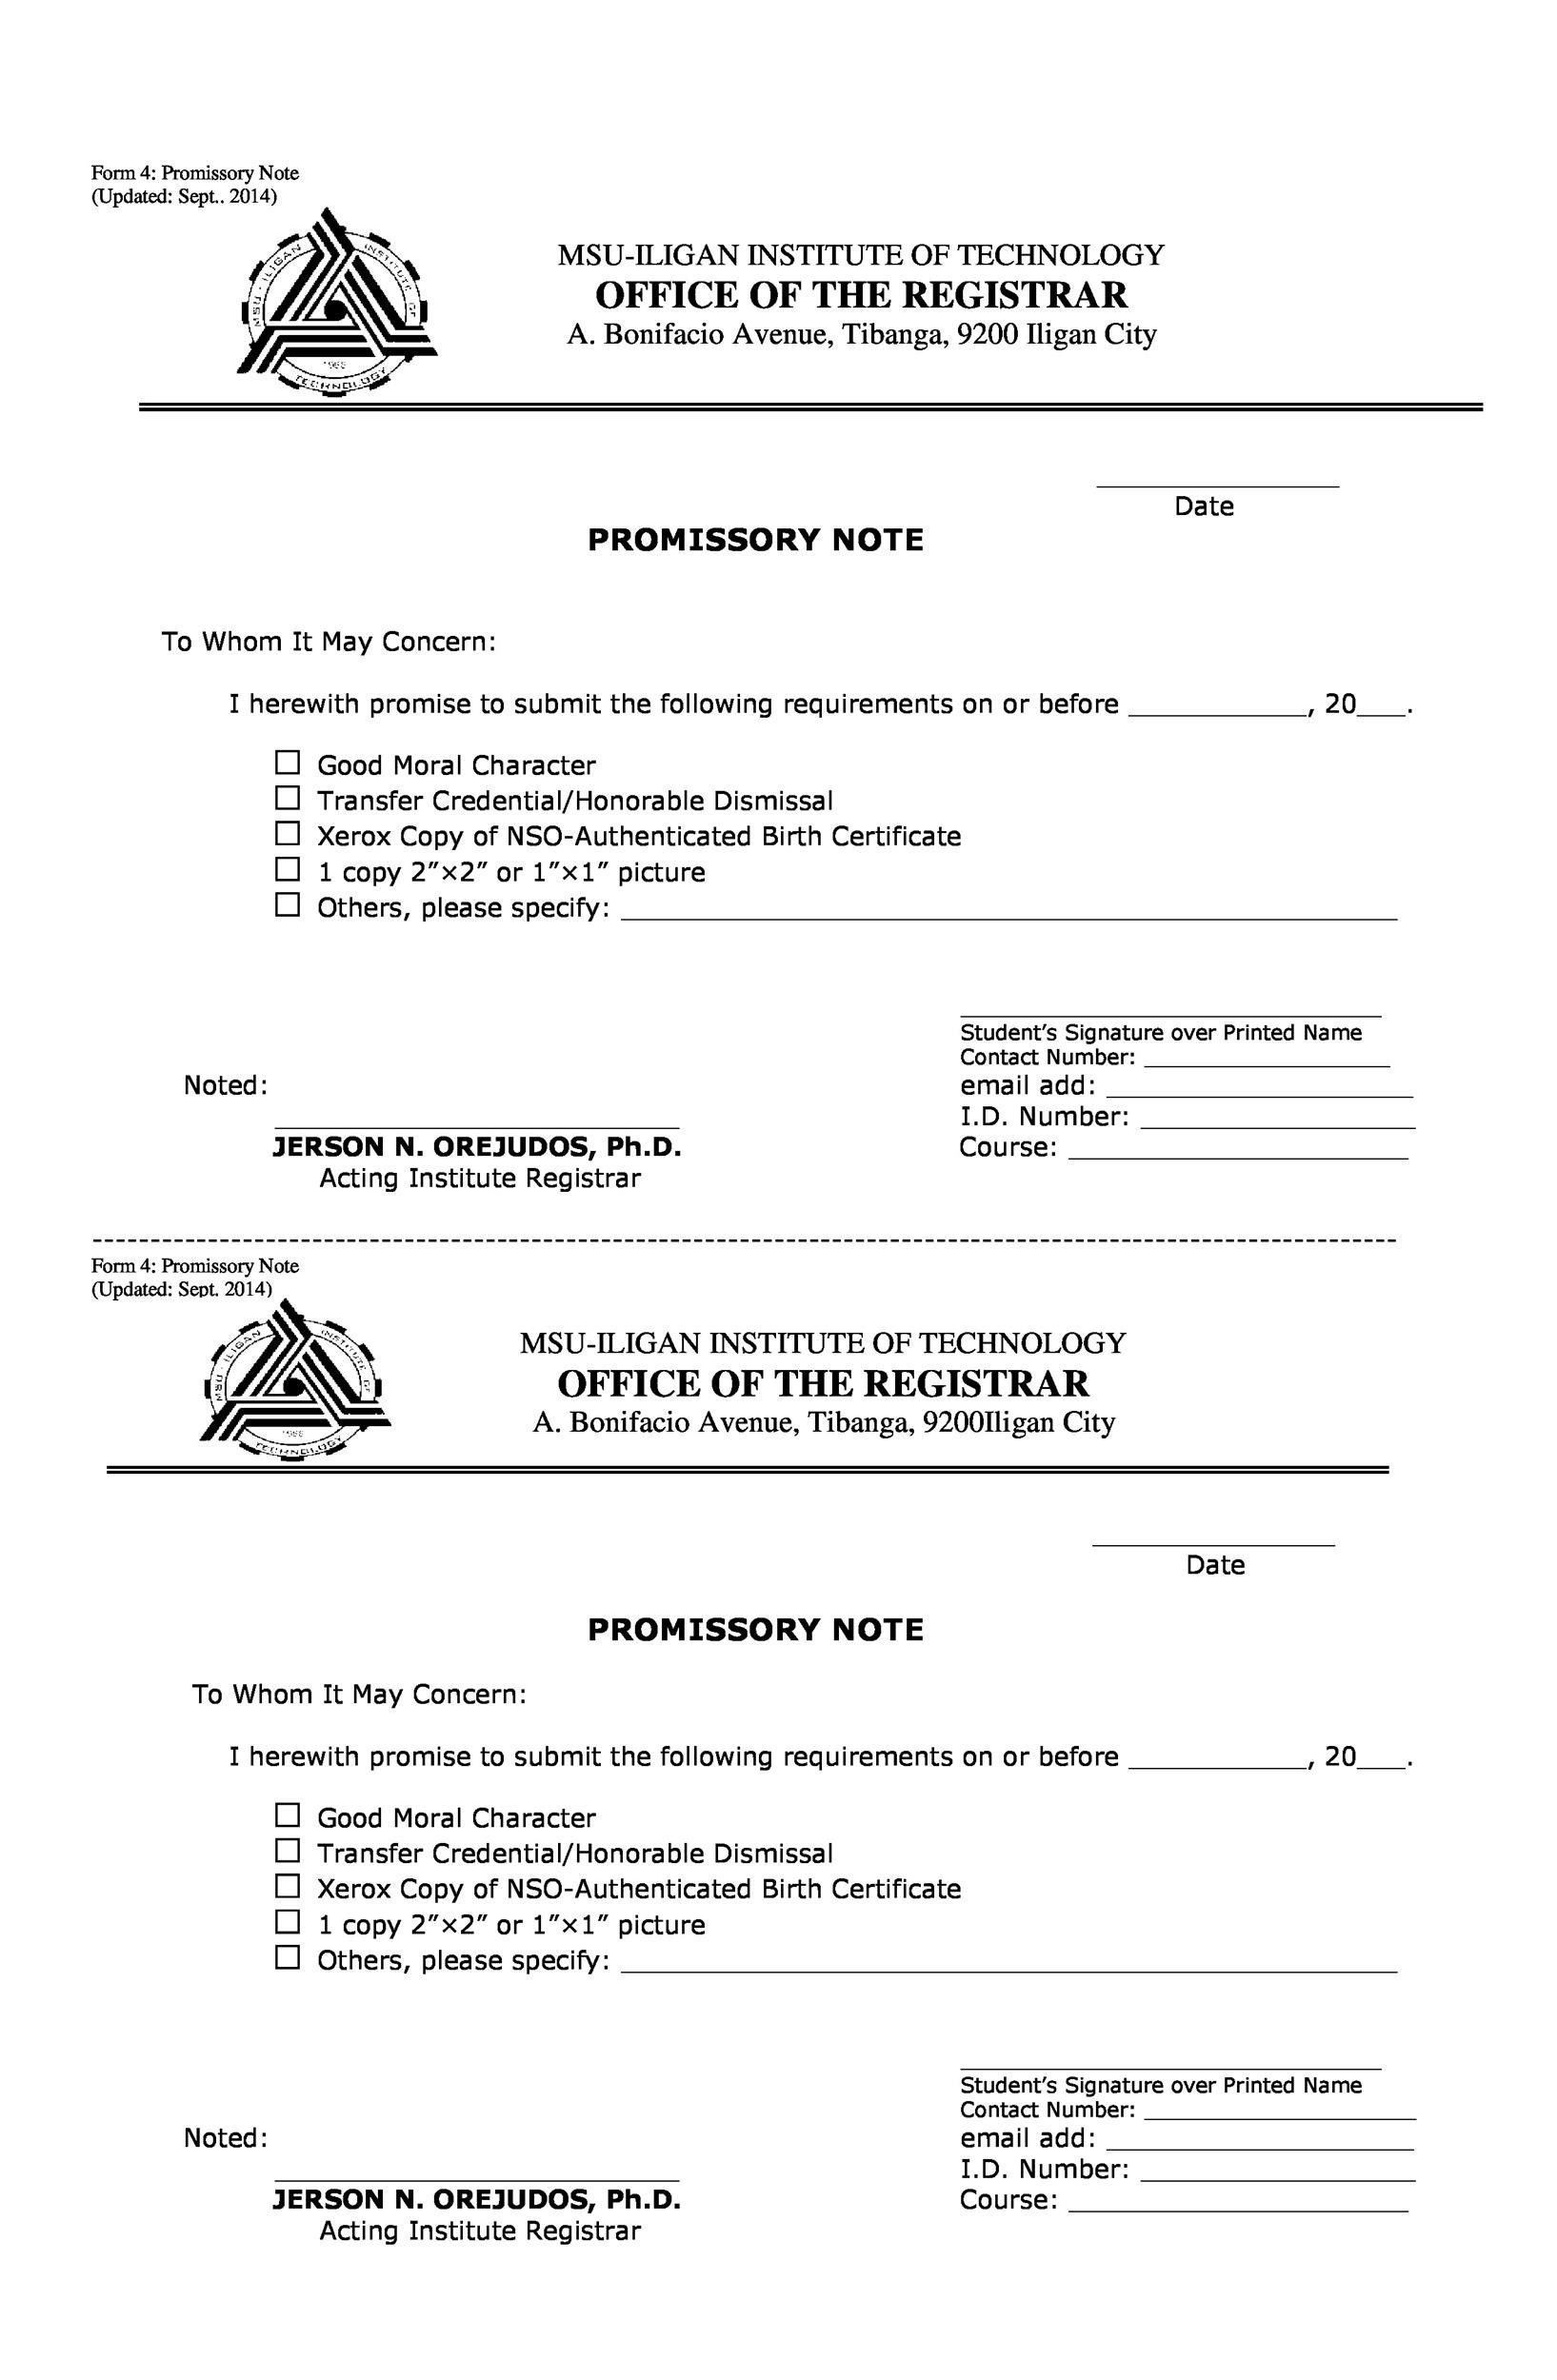 45 free promissory note templates forms word pdf for Iou letter template